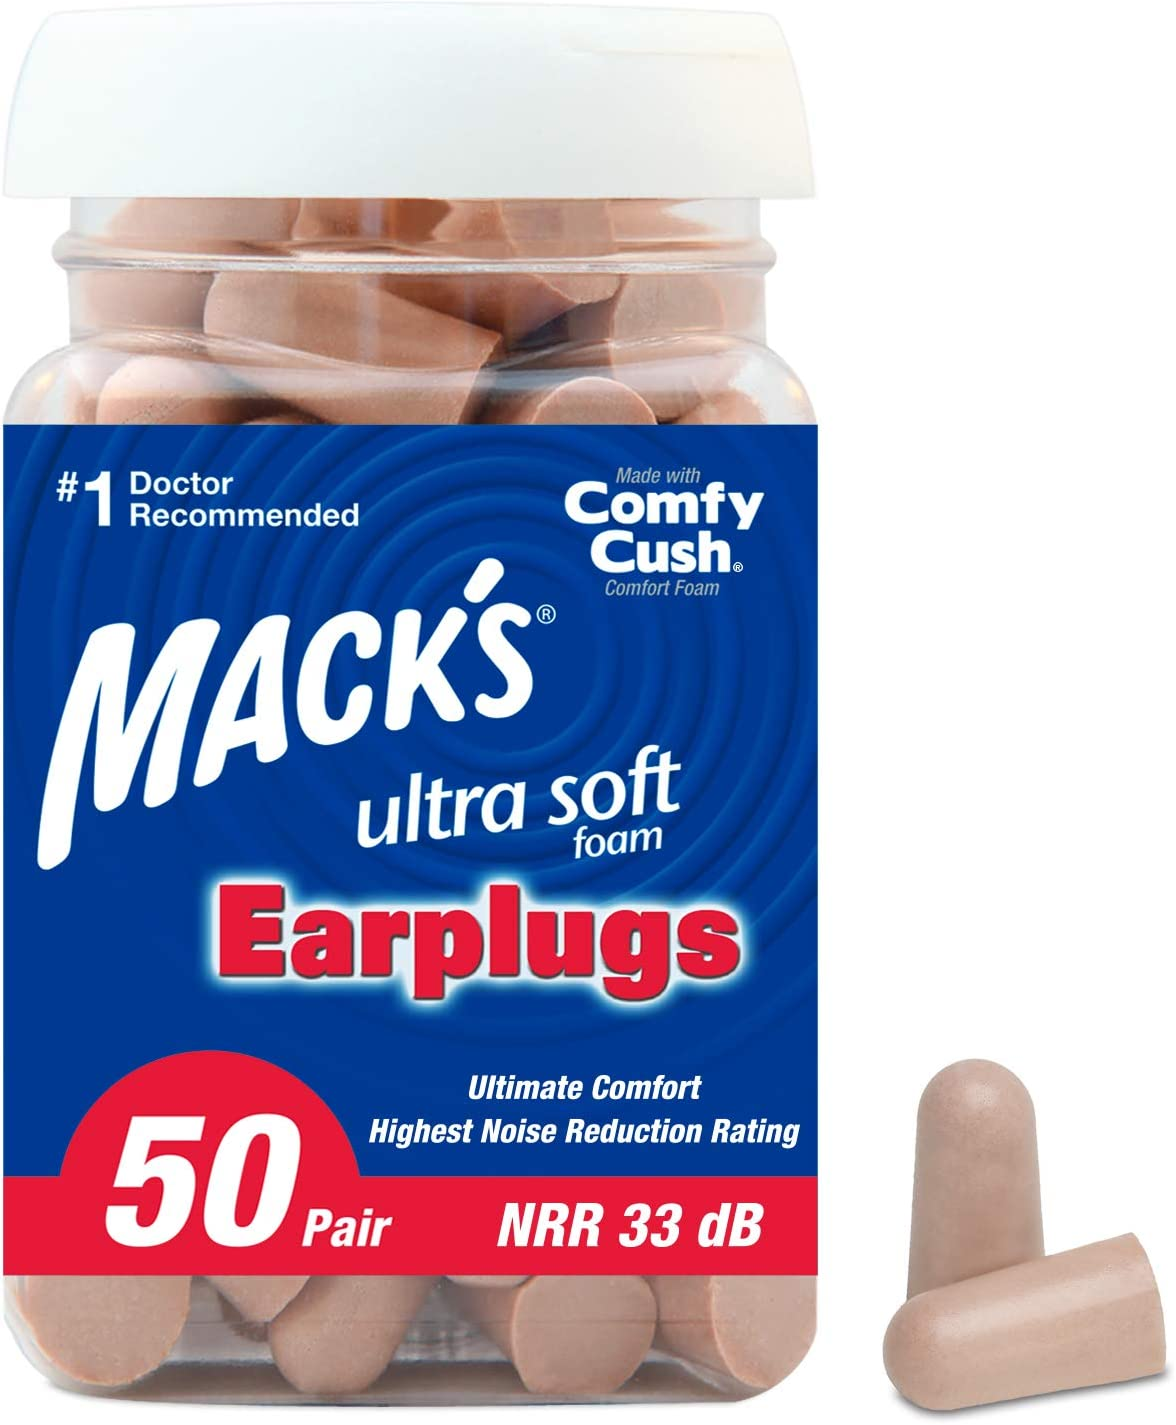 Mack's Ultra Soft Foam Earplugs, 50 Pair - 33dB Highest NRR, Comfortable Ear Plugs for Sleeping, Snoring, Travel, Concerts, Studying, Loud Noise, Work: Health & Personal Care